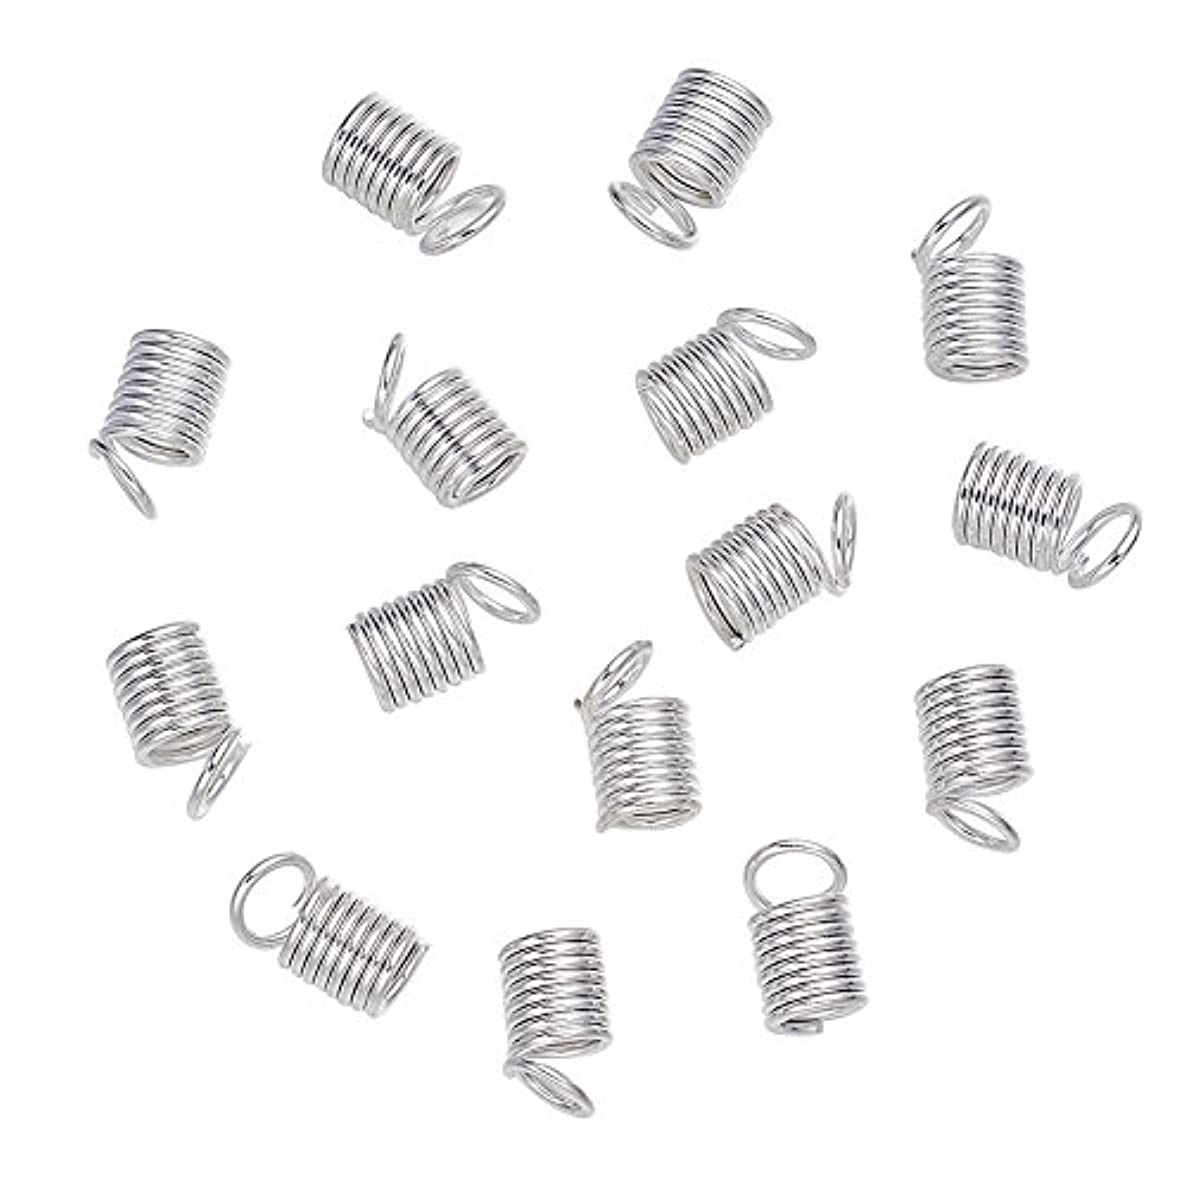 Pandahall 200pcs Silver Iron Tube Coil Cord Ends Cord Cap Tip Leather Cord Ends Caps Necklace Spring Fastener Crimp Clasp Jewelry Making 9x5mm